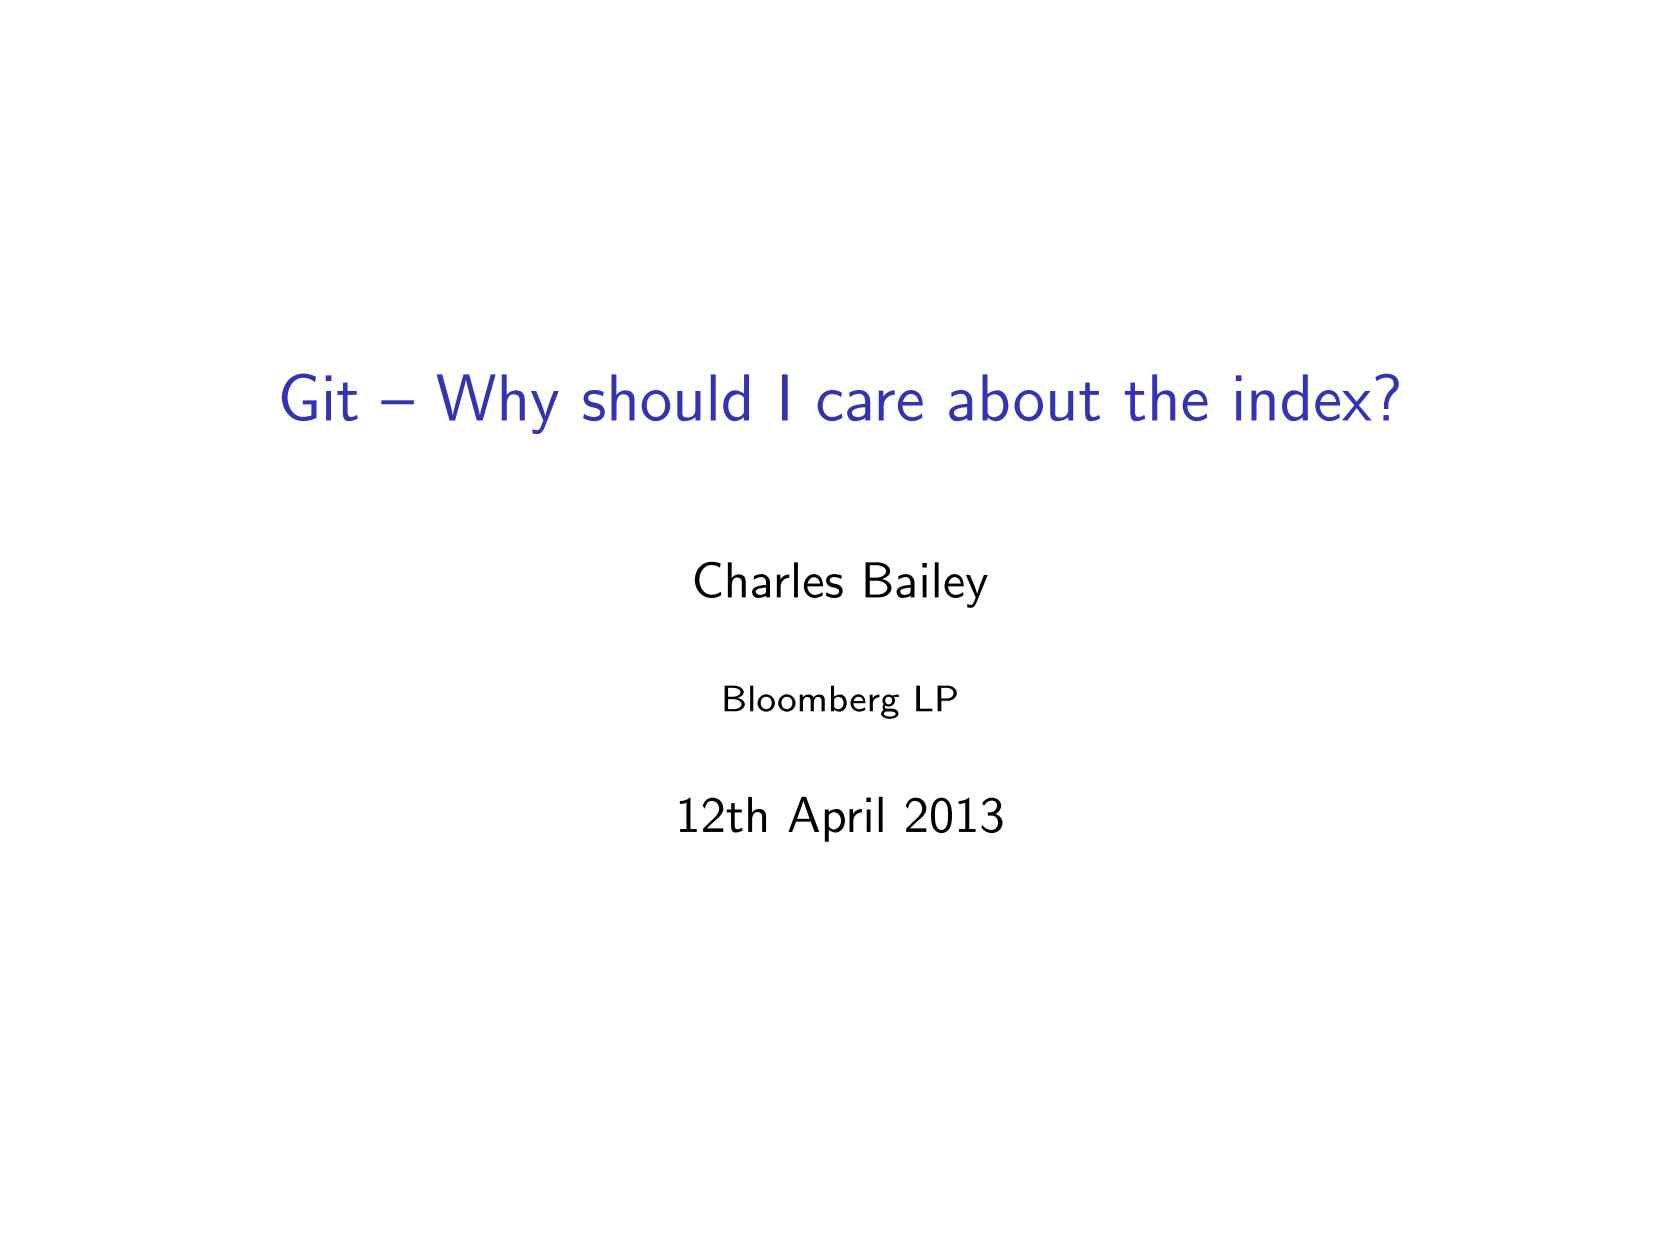 Git–Why Should I Care about the Index?